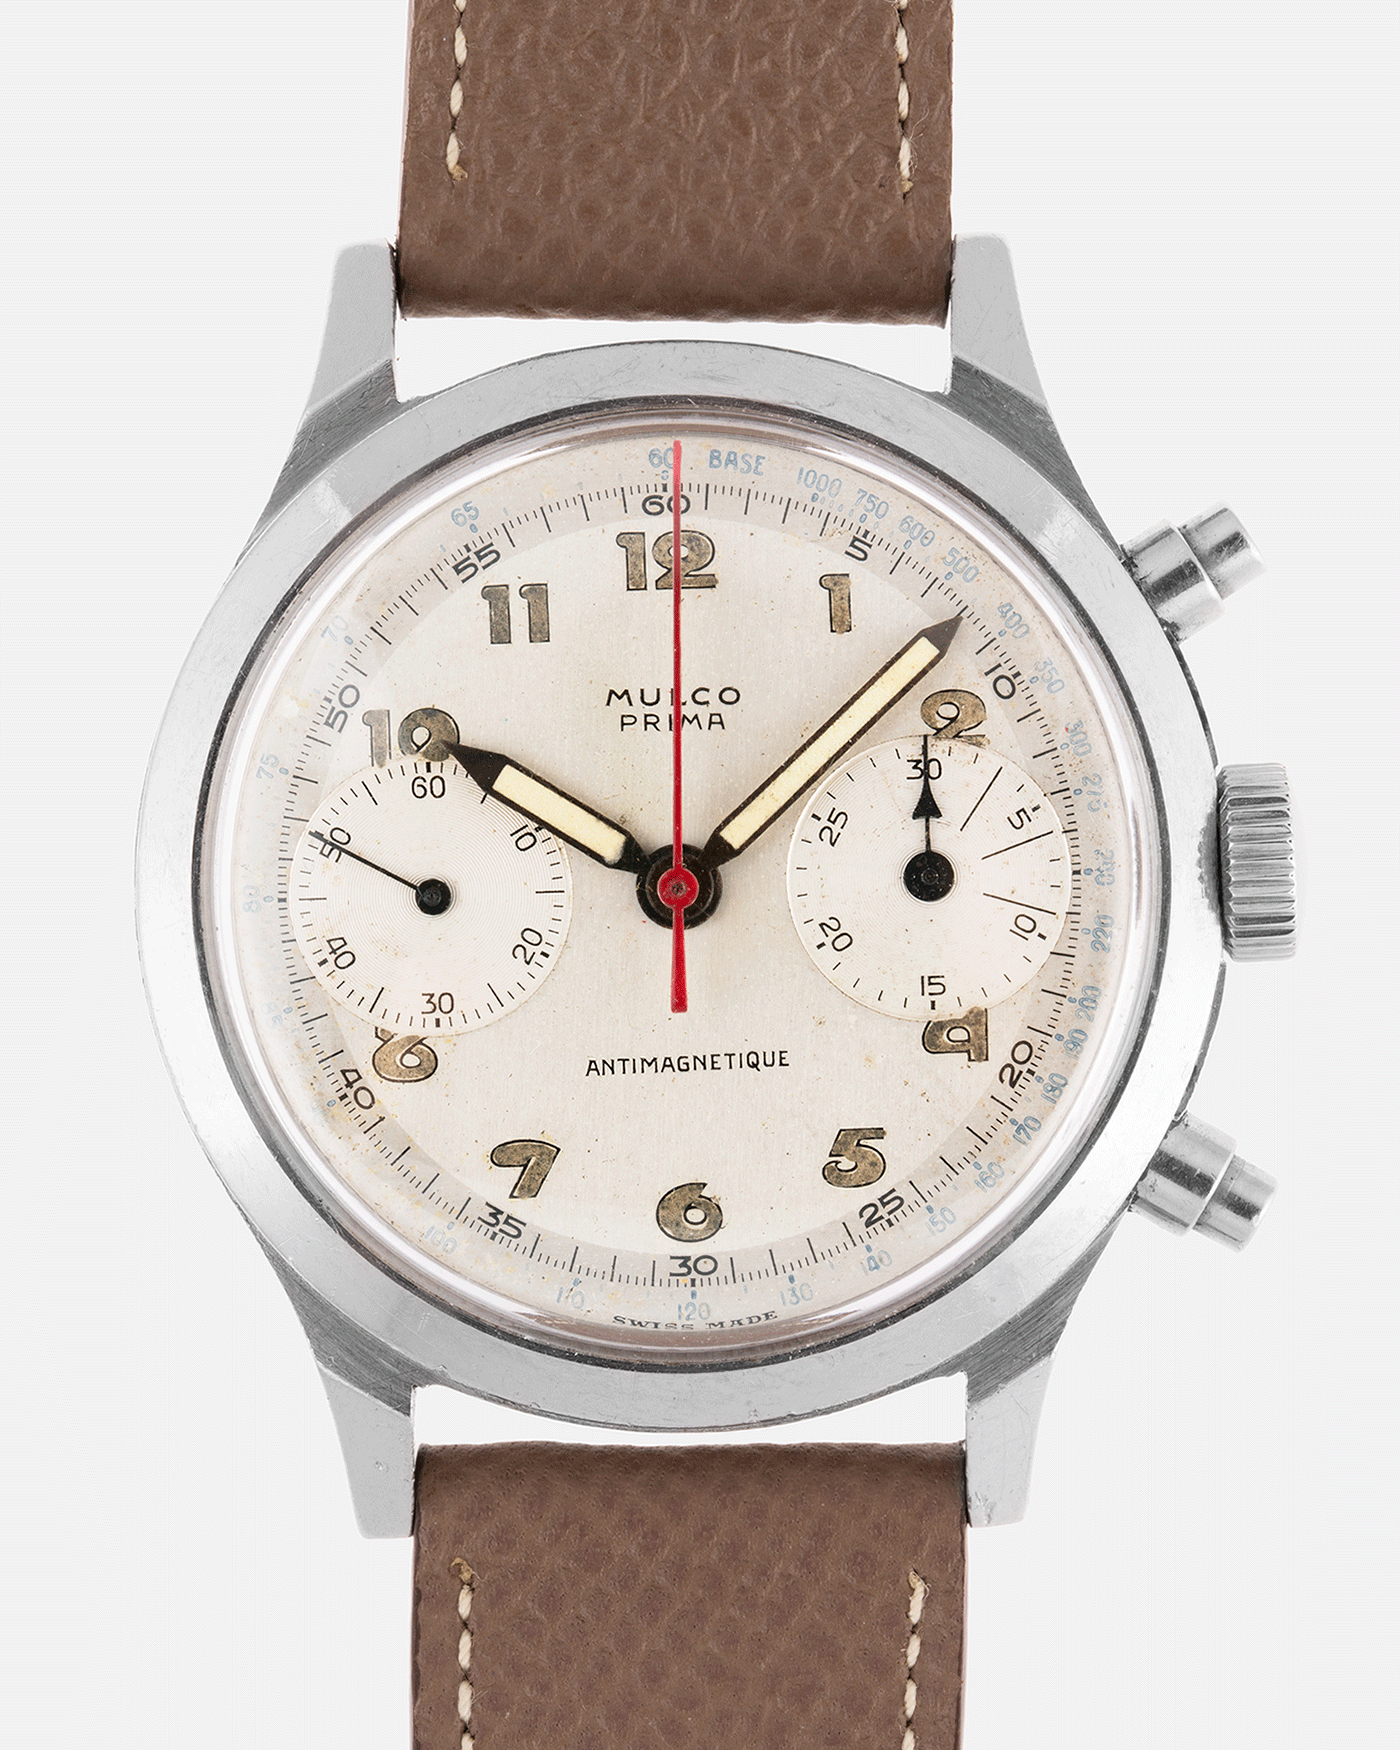 Mulco Prima Spillman Case Chronograph Vintage Watch | S.Song Vintage Watches Mark Eleven